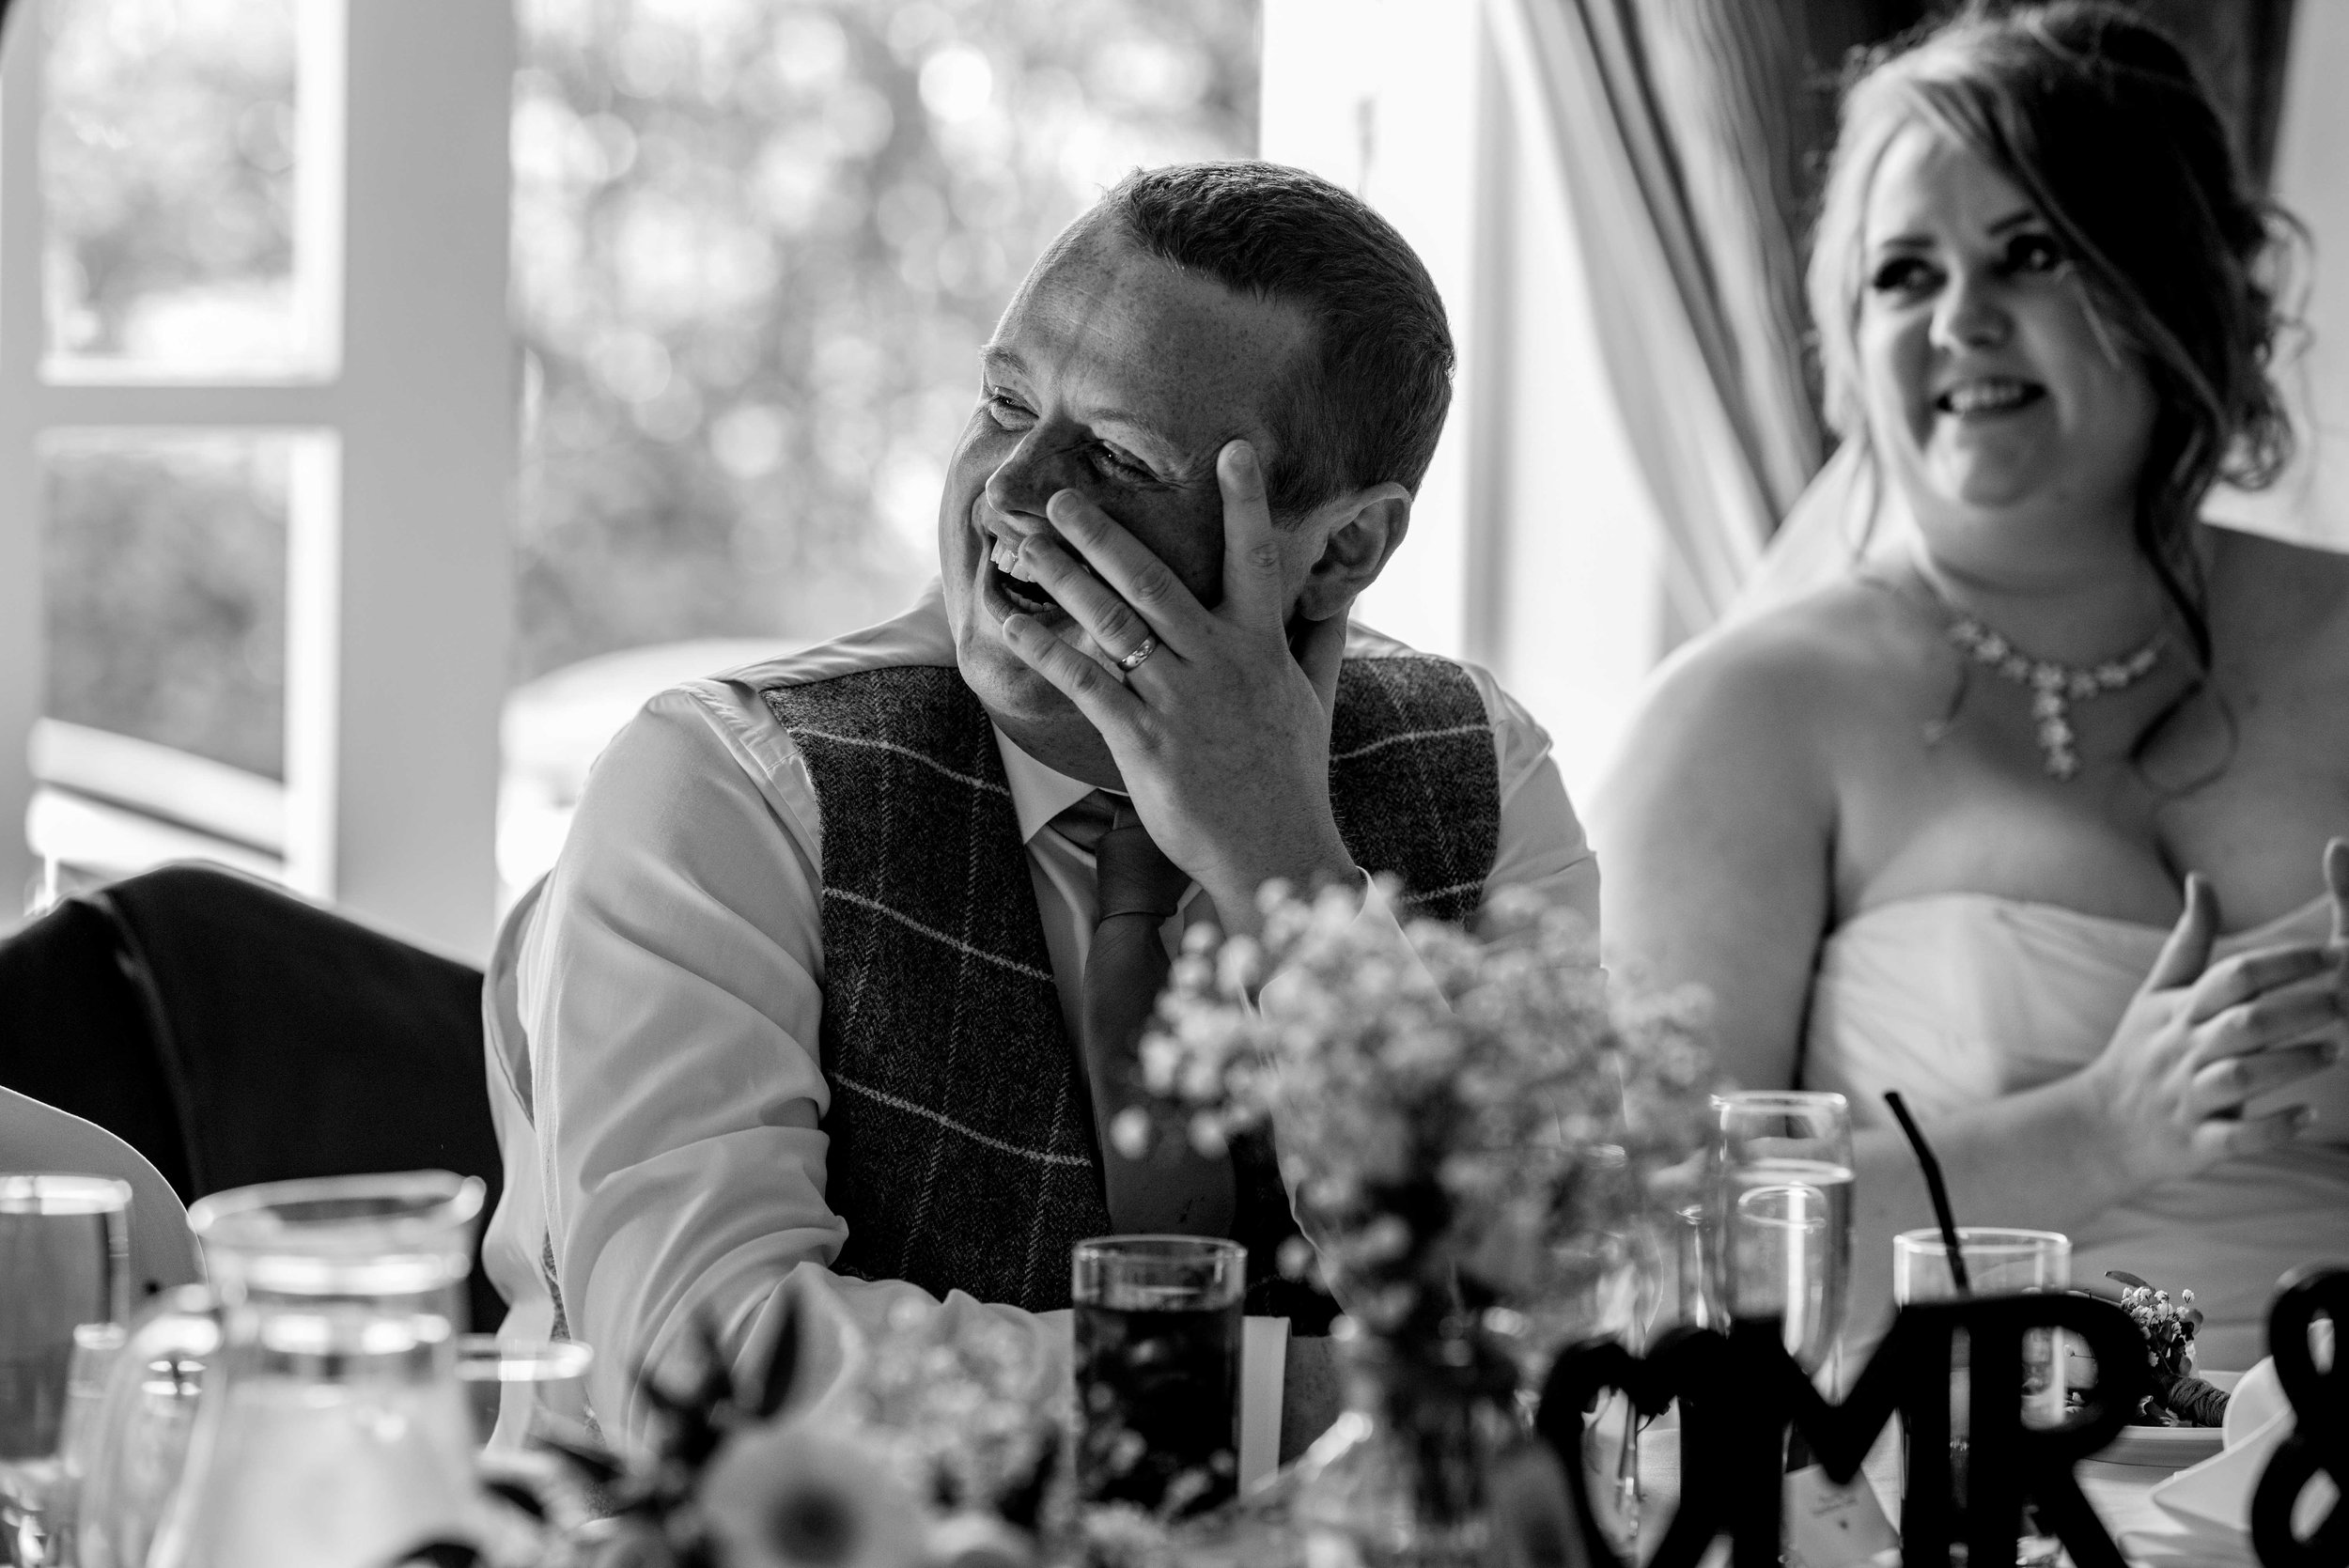 The groom sits looking awkward and a bit worried during the best mans speech